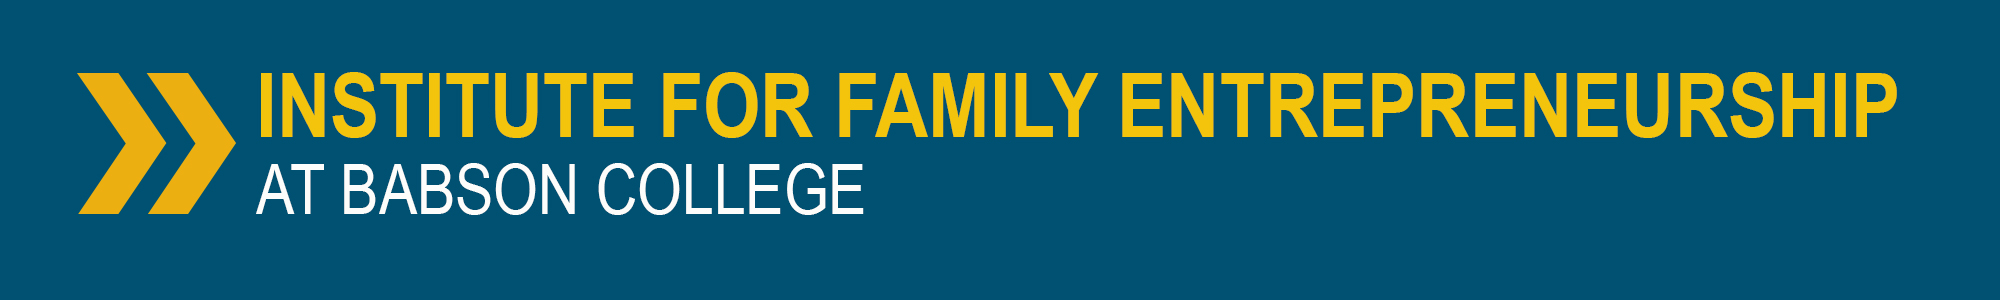 Institute for Family Entrepreneurship Header